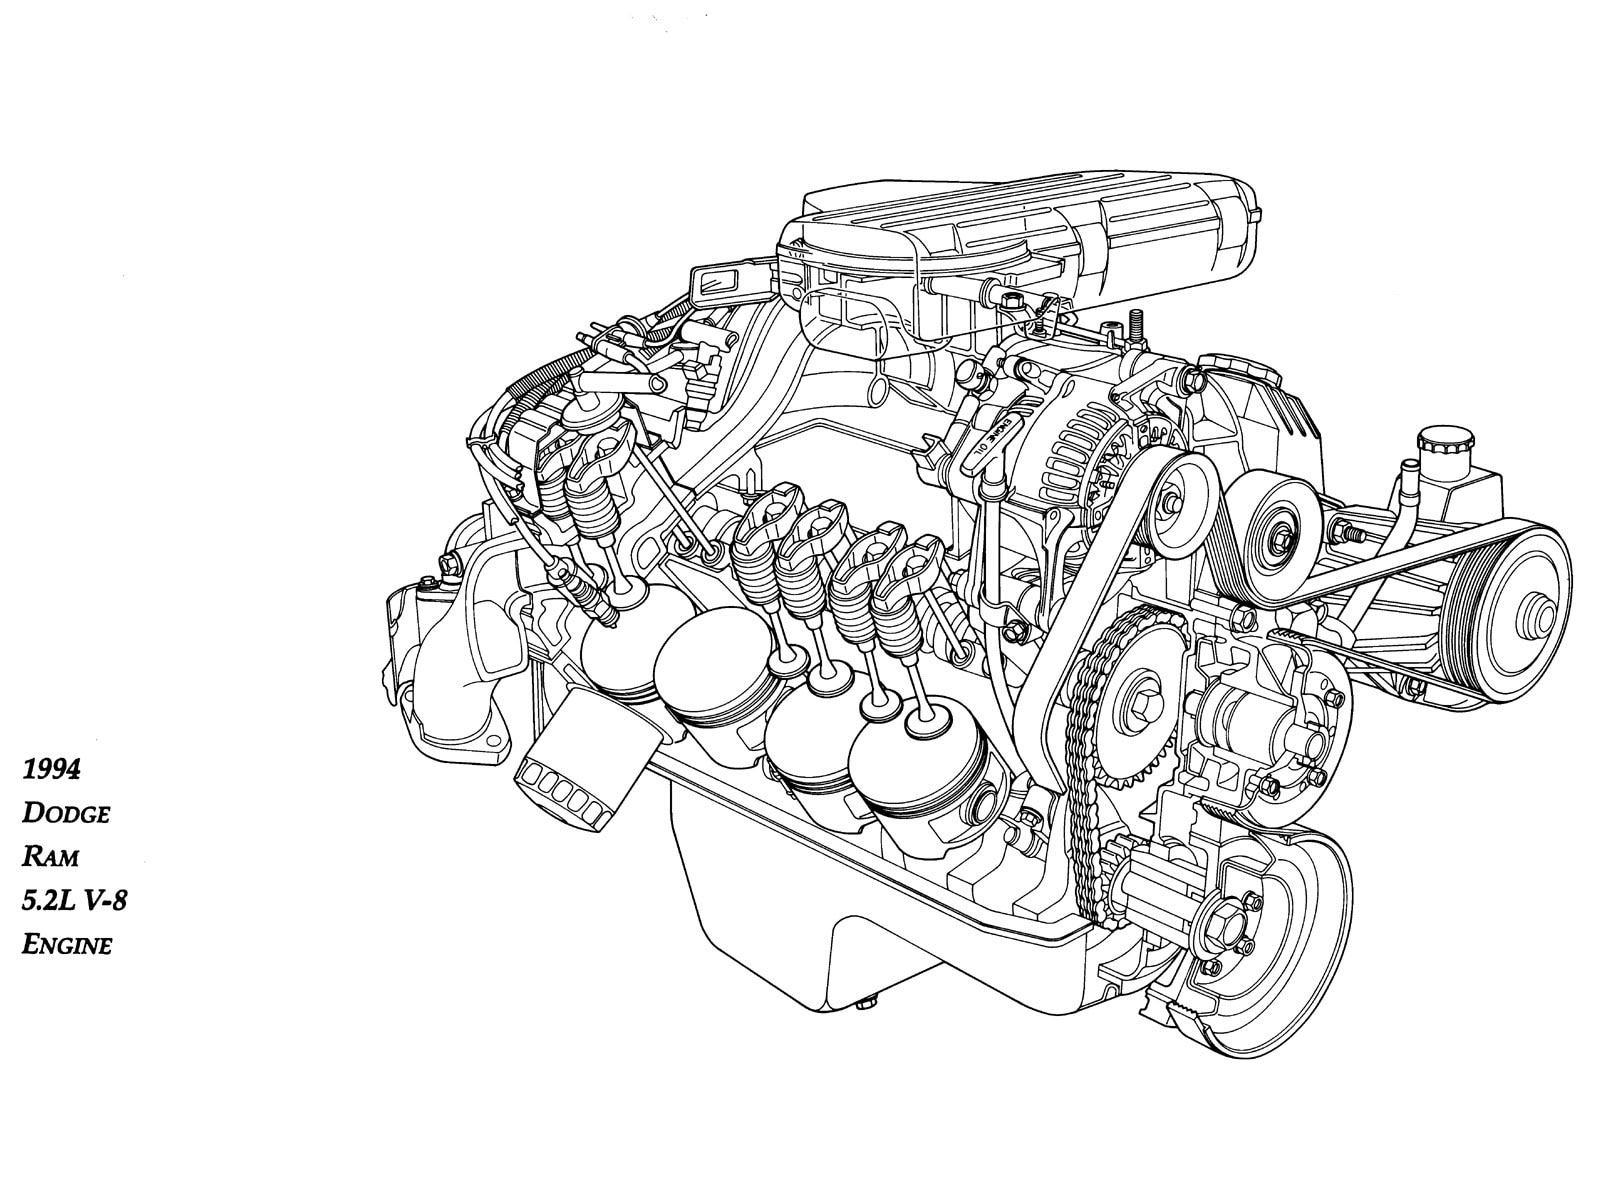 Honda V6 Engines